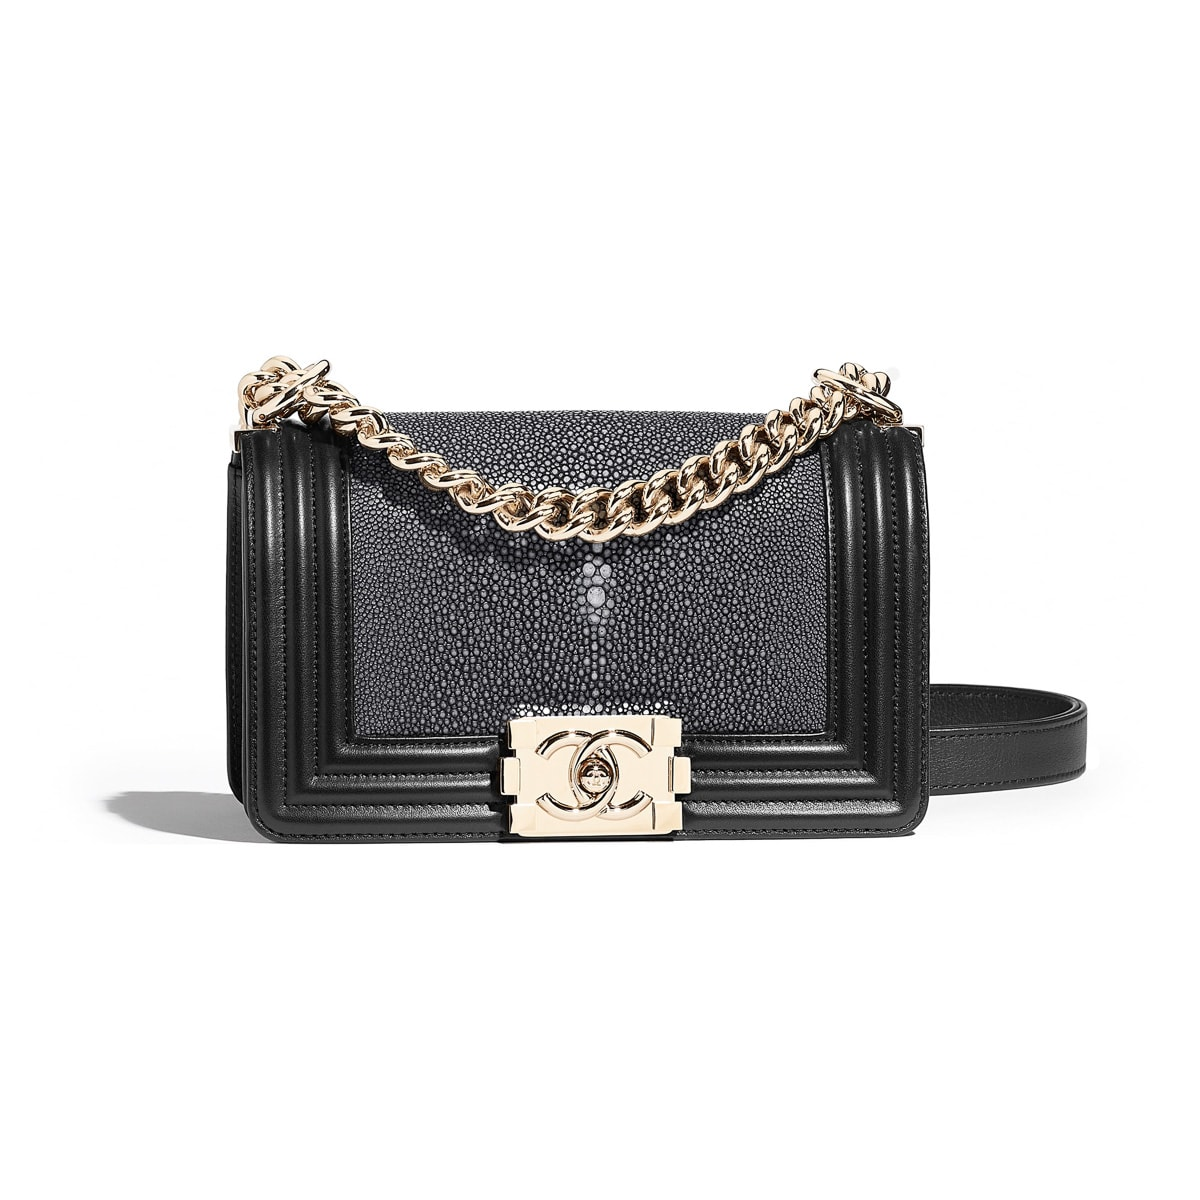 5bedae6674880e We've Got Over 100 Pics + Prices of Chanel's Nautical-Inspired ...